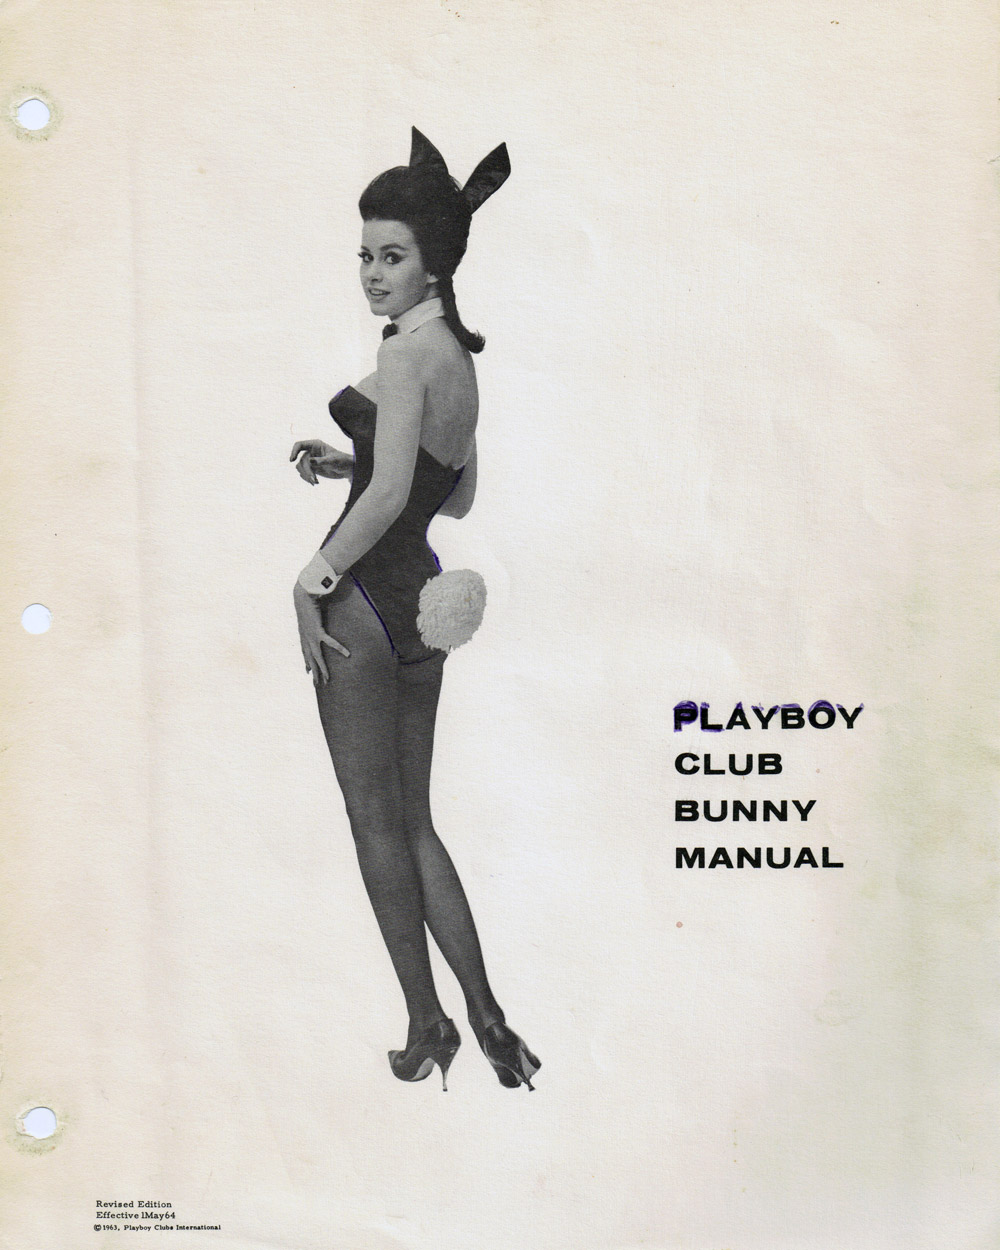 The 1964 Playboy Club Bunny manual cover page